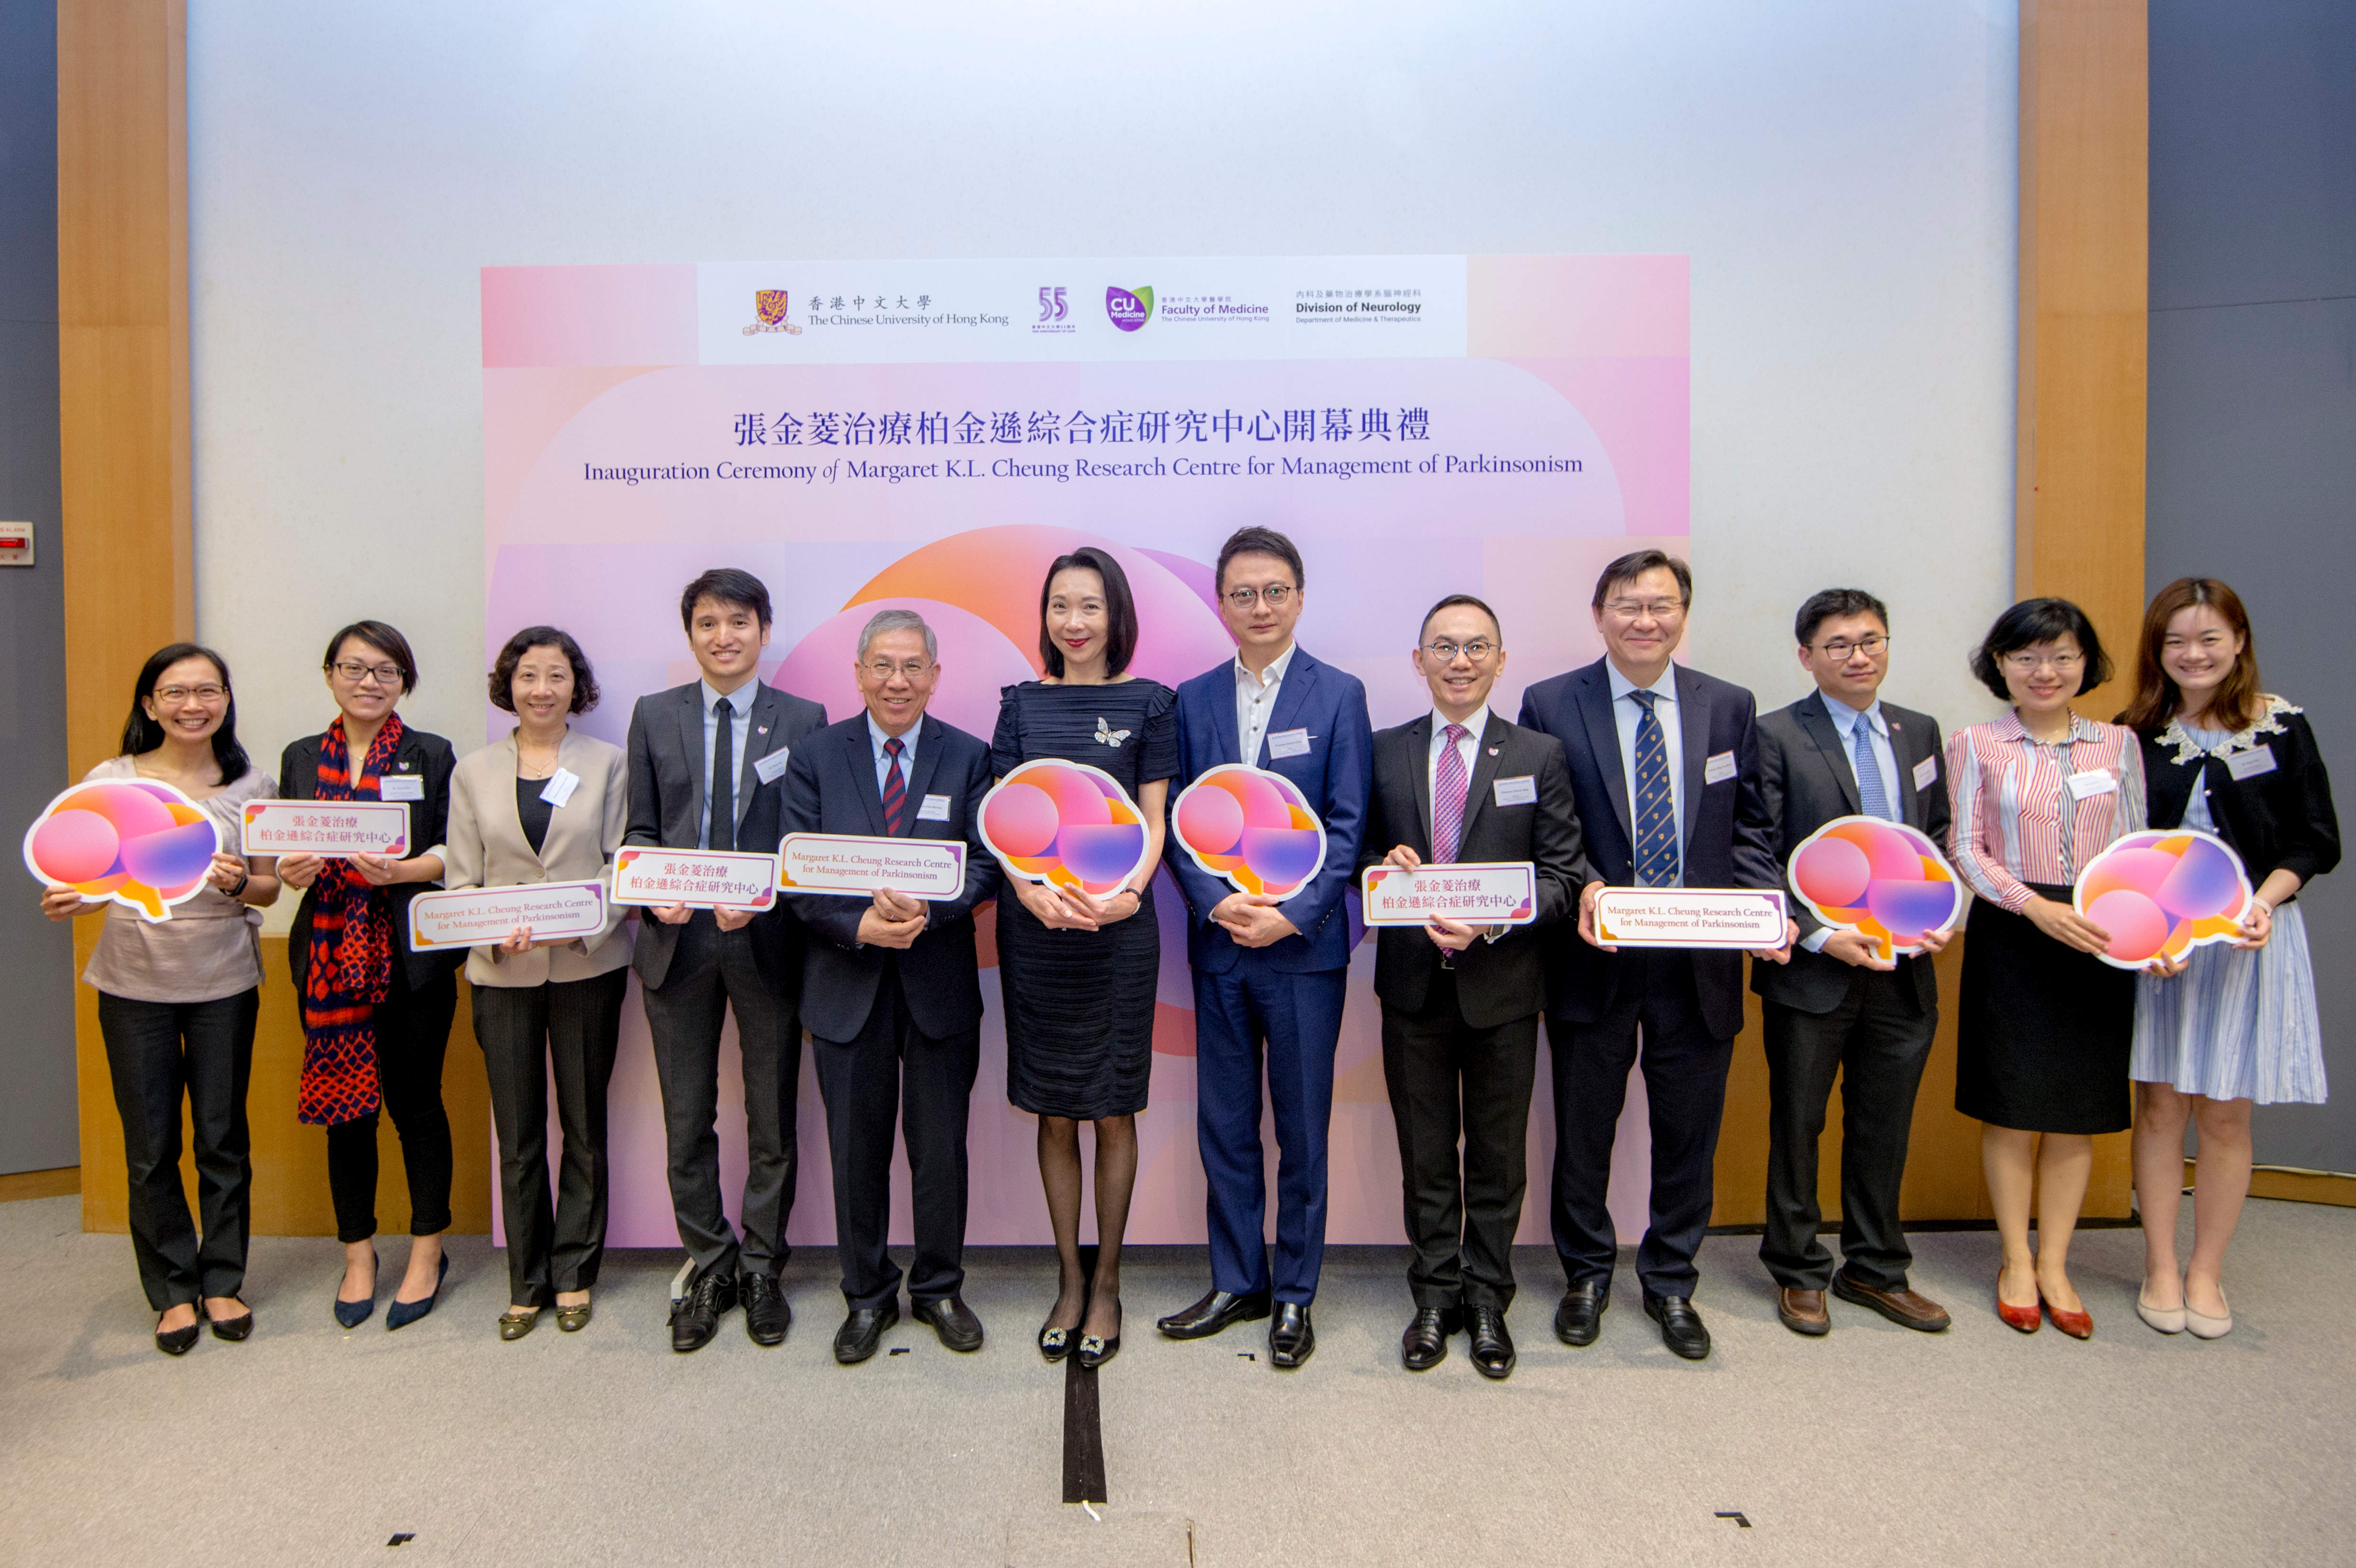 With a generous donation from Ms. Margaret Kam Ling CHEUNG, the Faculty of Medicine at CUHK sets up the Margaret K.L. Cheung Research Centre for Management of Parkinsonism on the World Parkinson's Day (11 April).